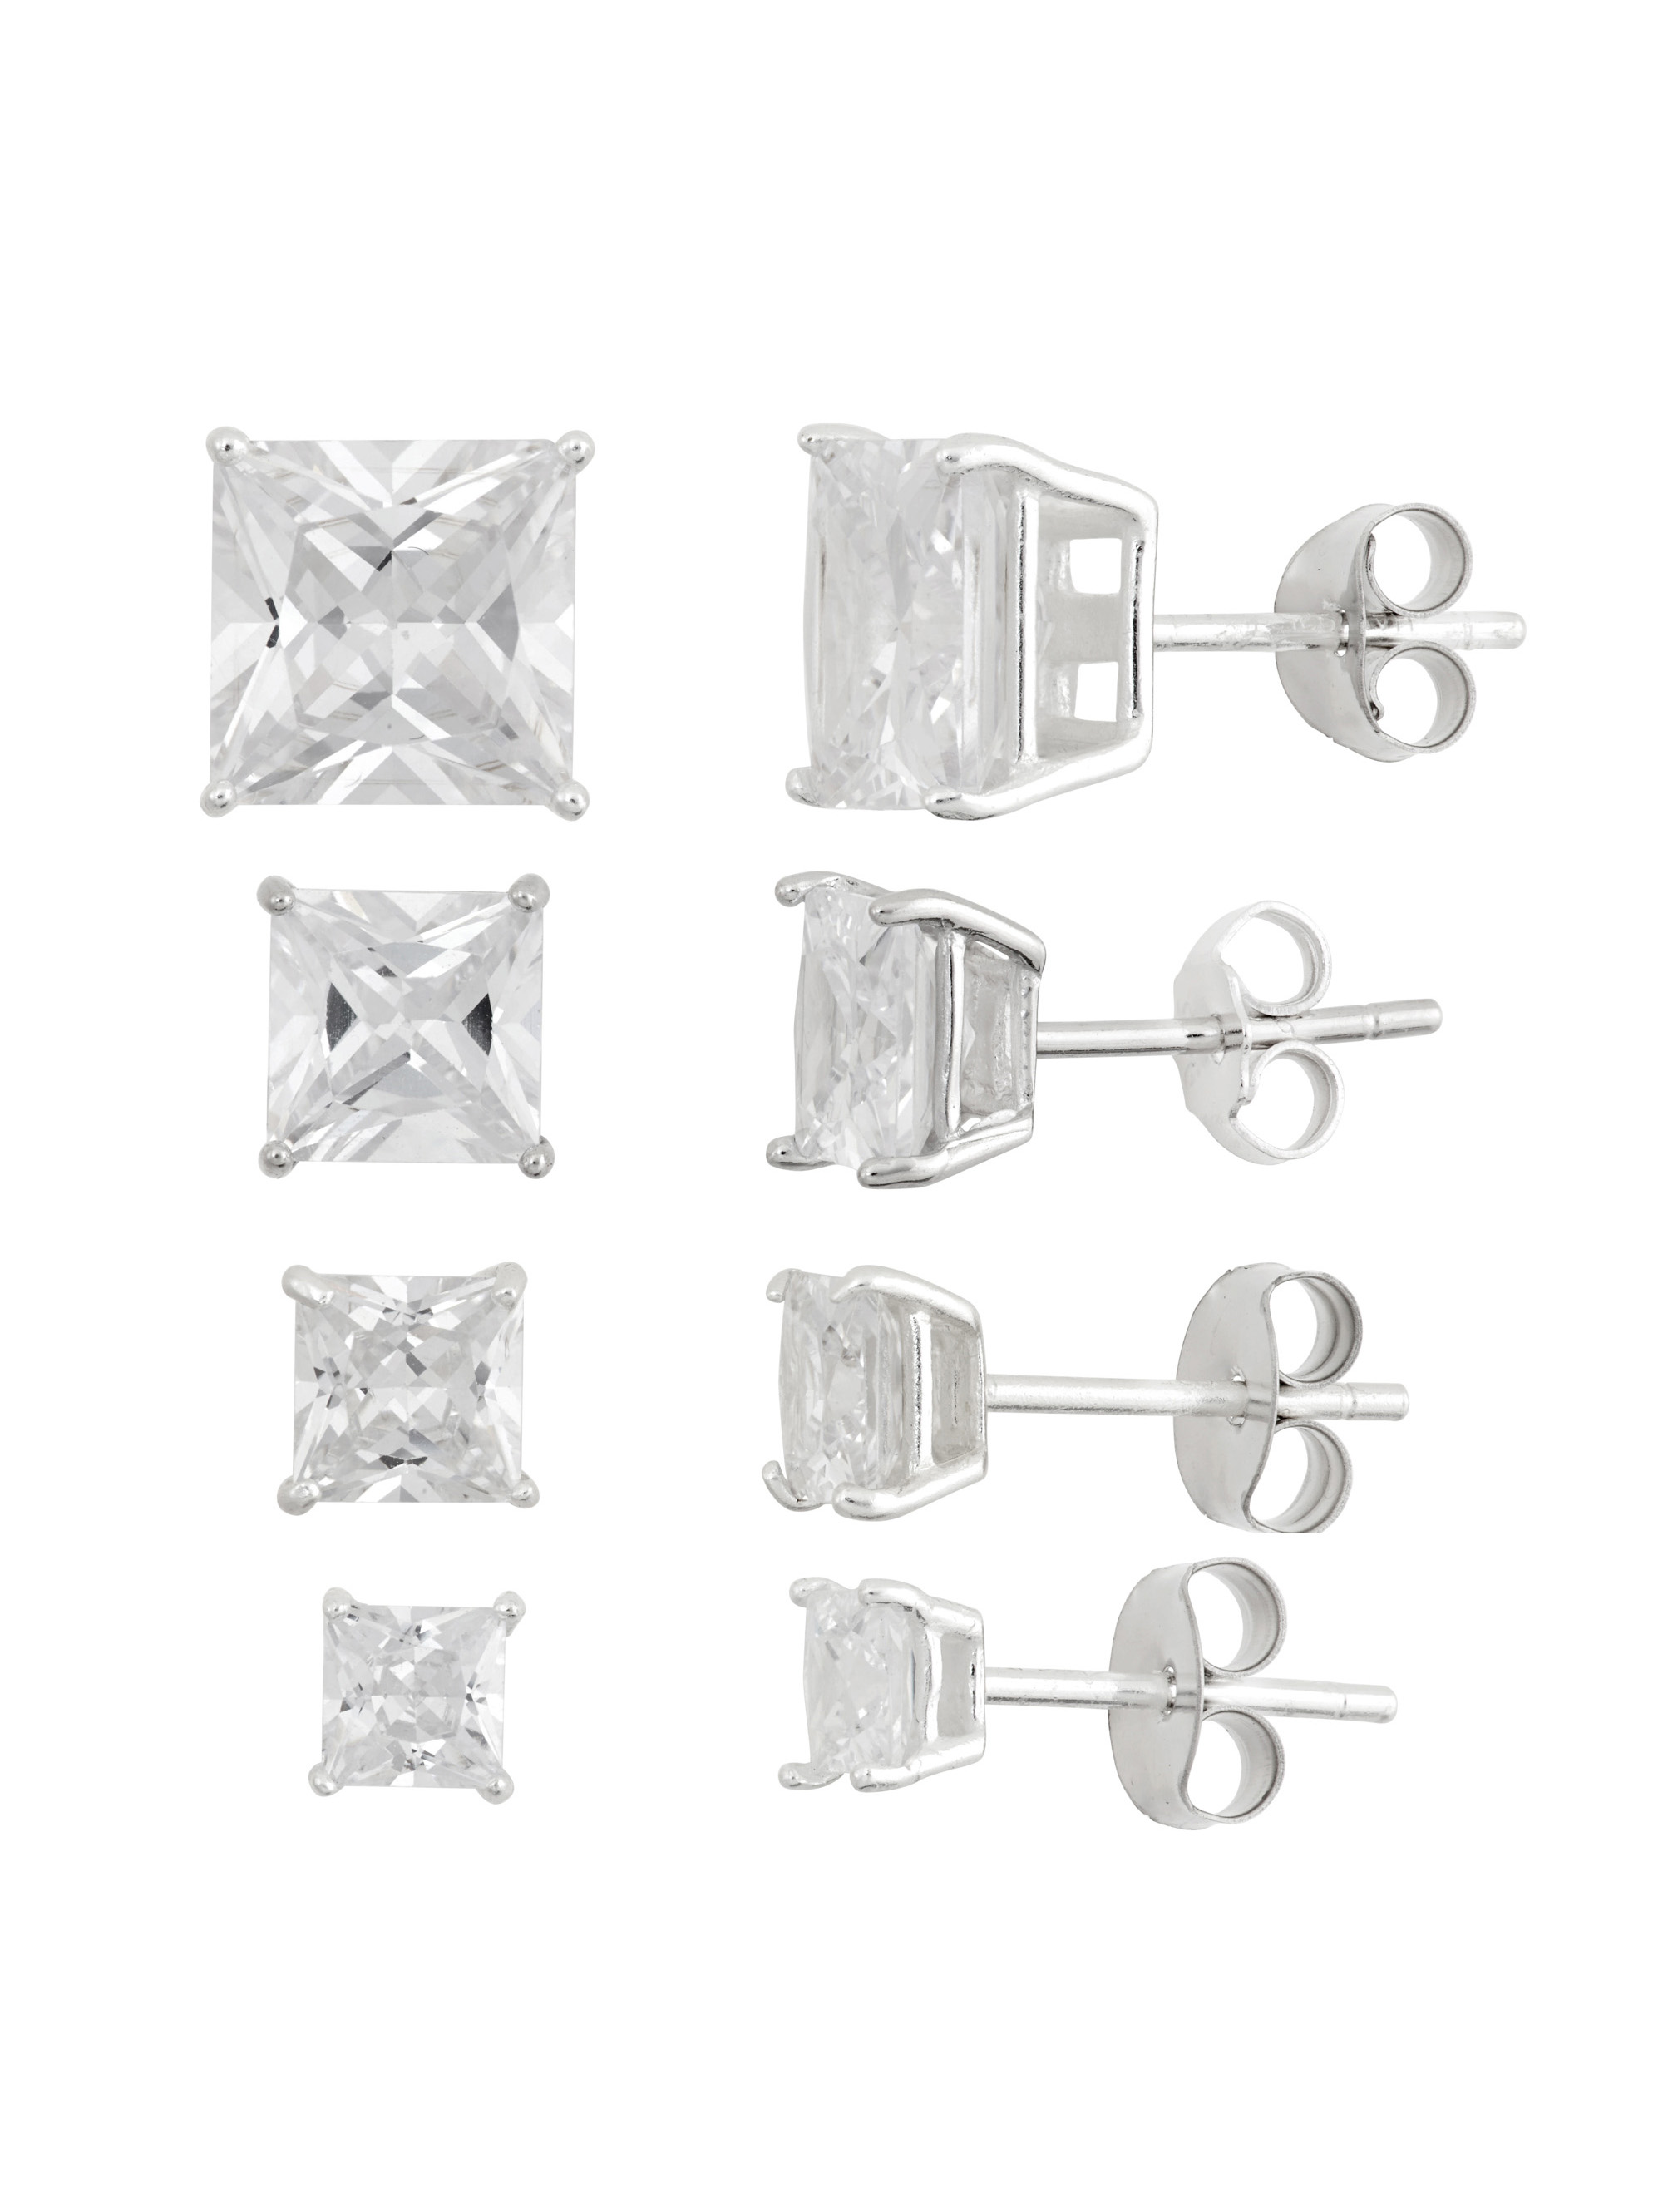 White CZ Square 4mm, 5mm, 7mm and 8mm Sterling Silver Stud Earrings Set